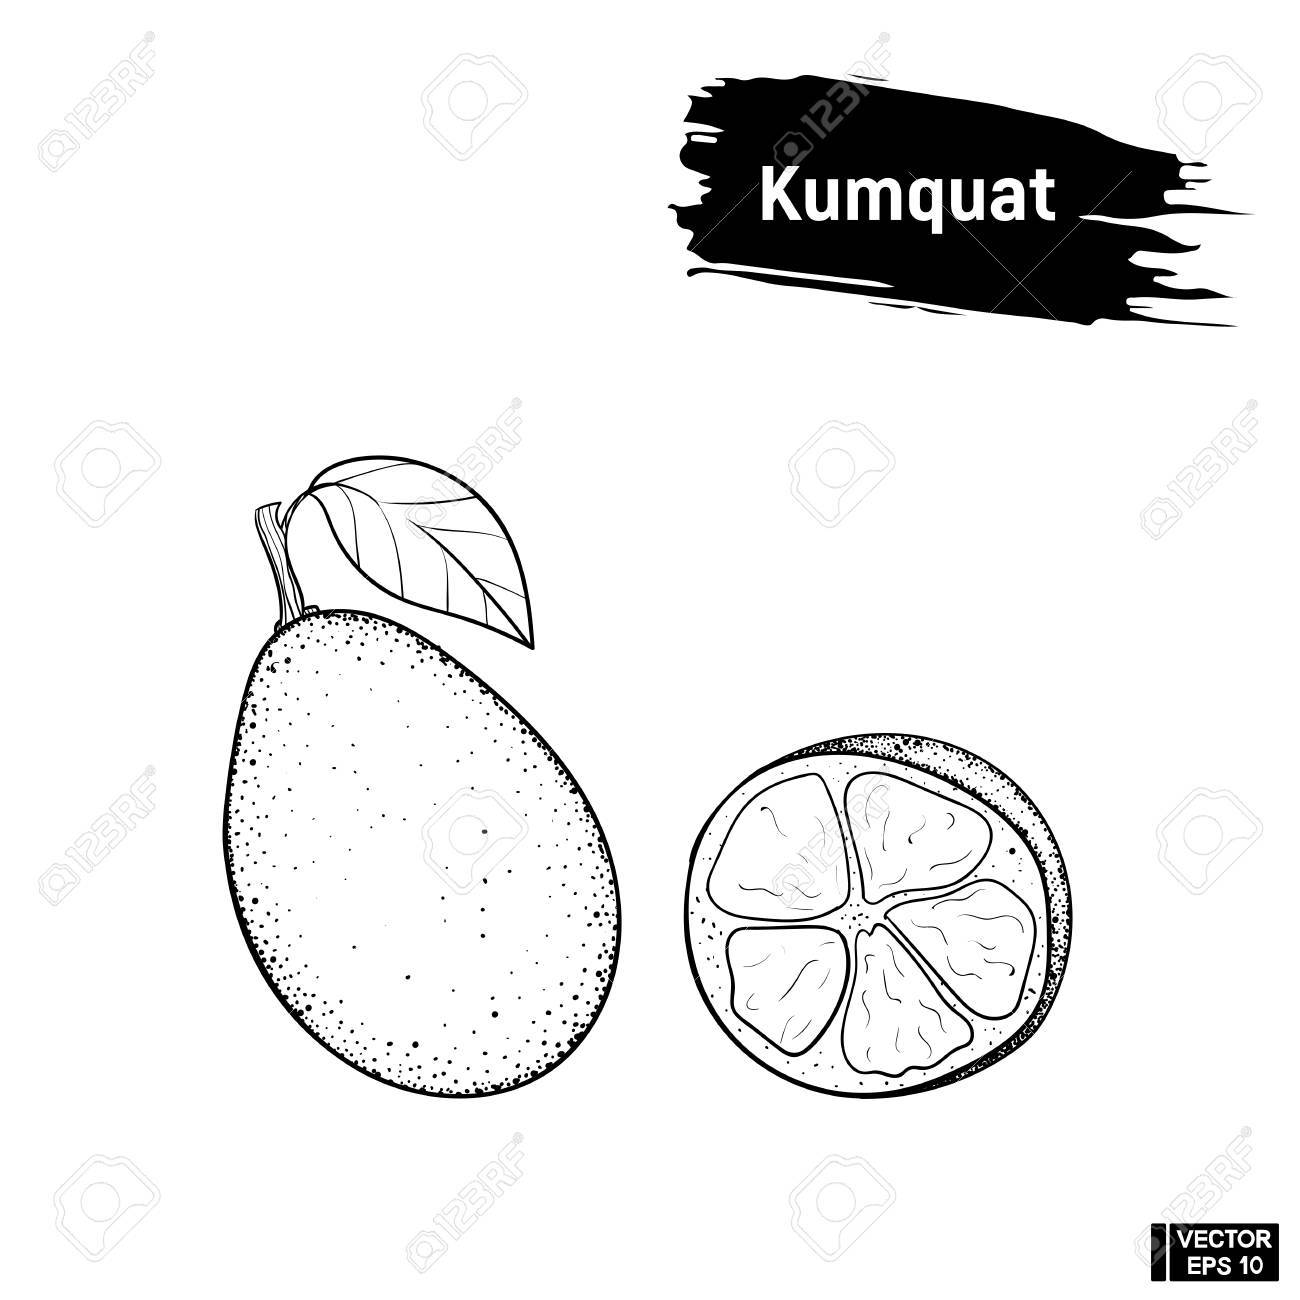 1300x1300 Vector Image. Black And White Sketch Of Exotic Fruit. Kumquat